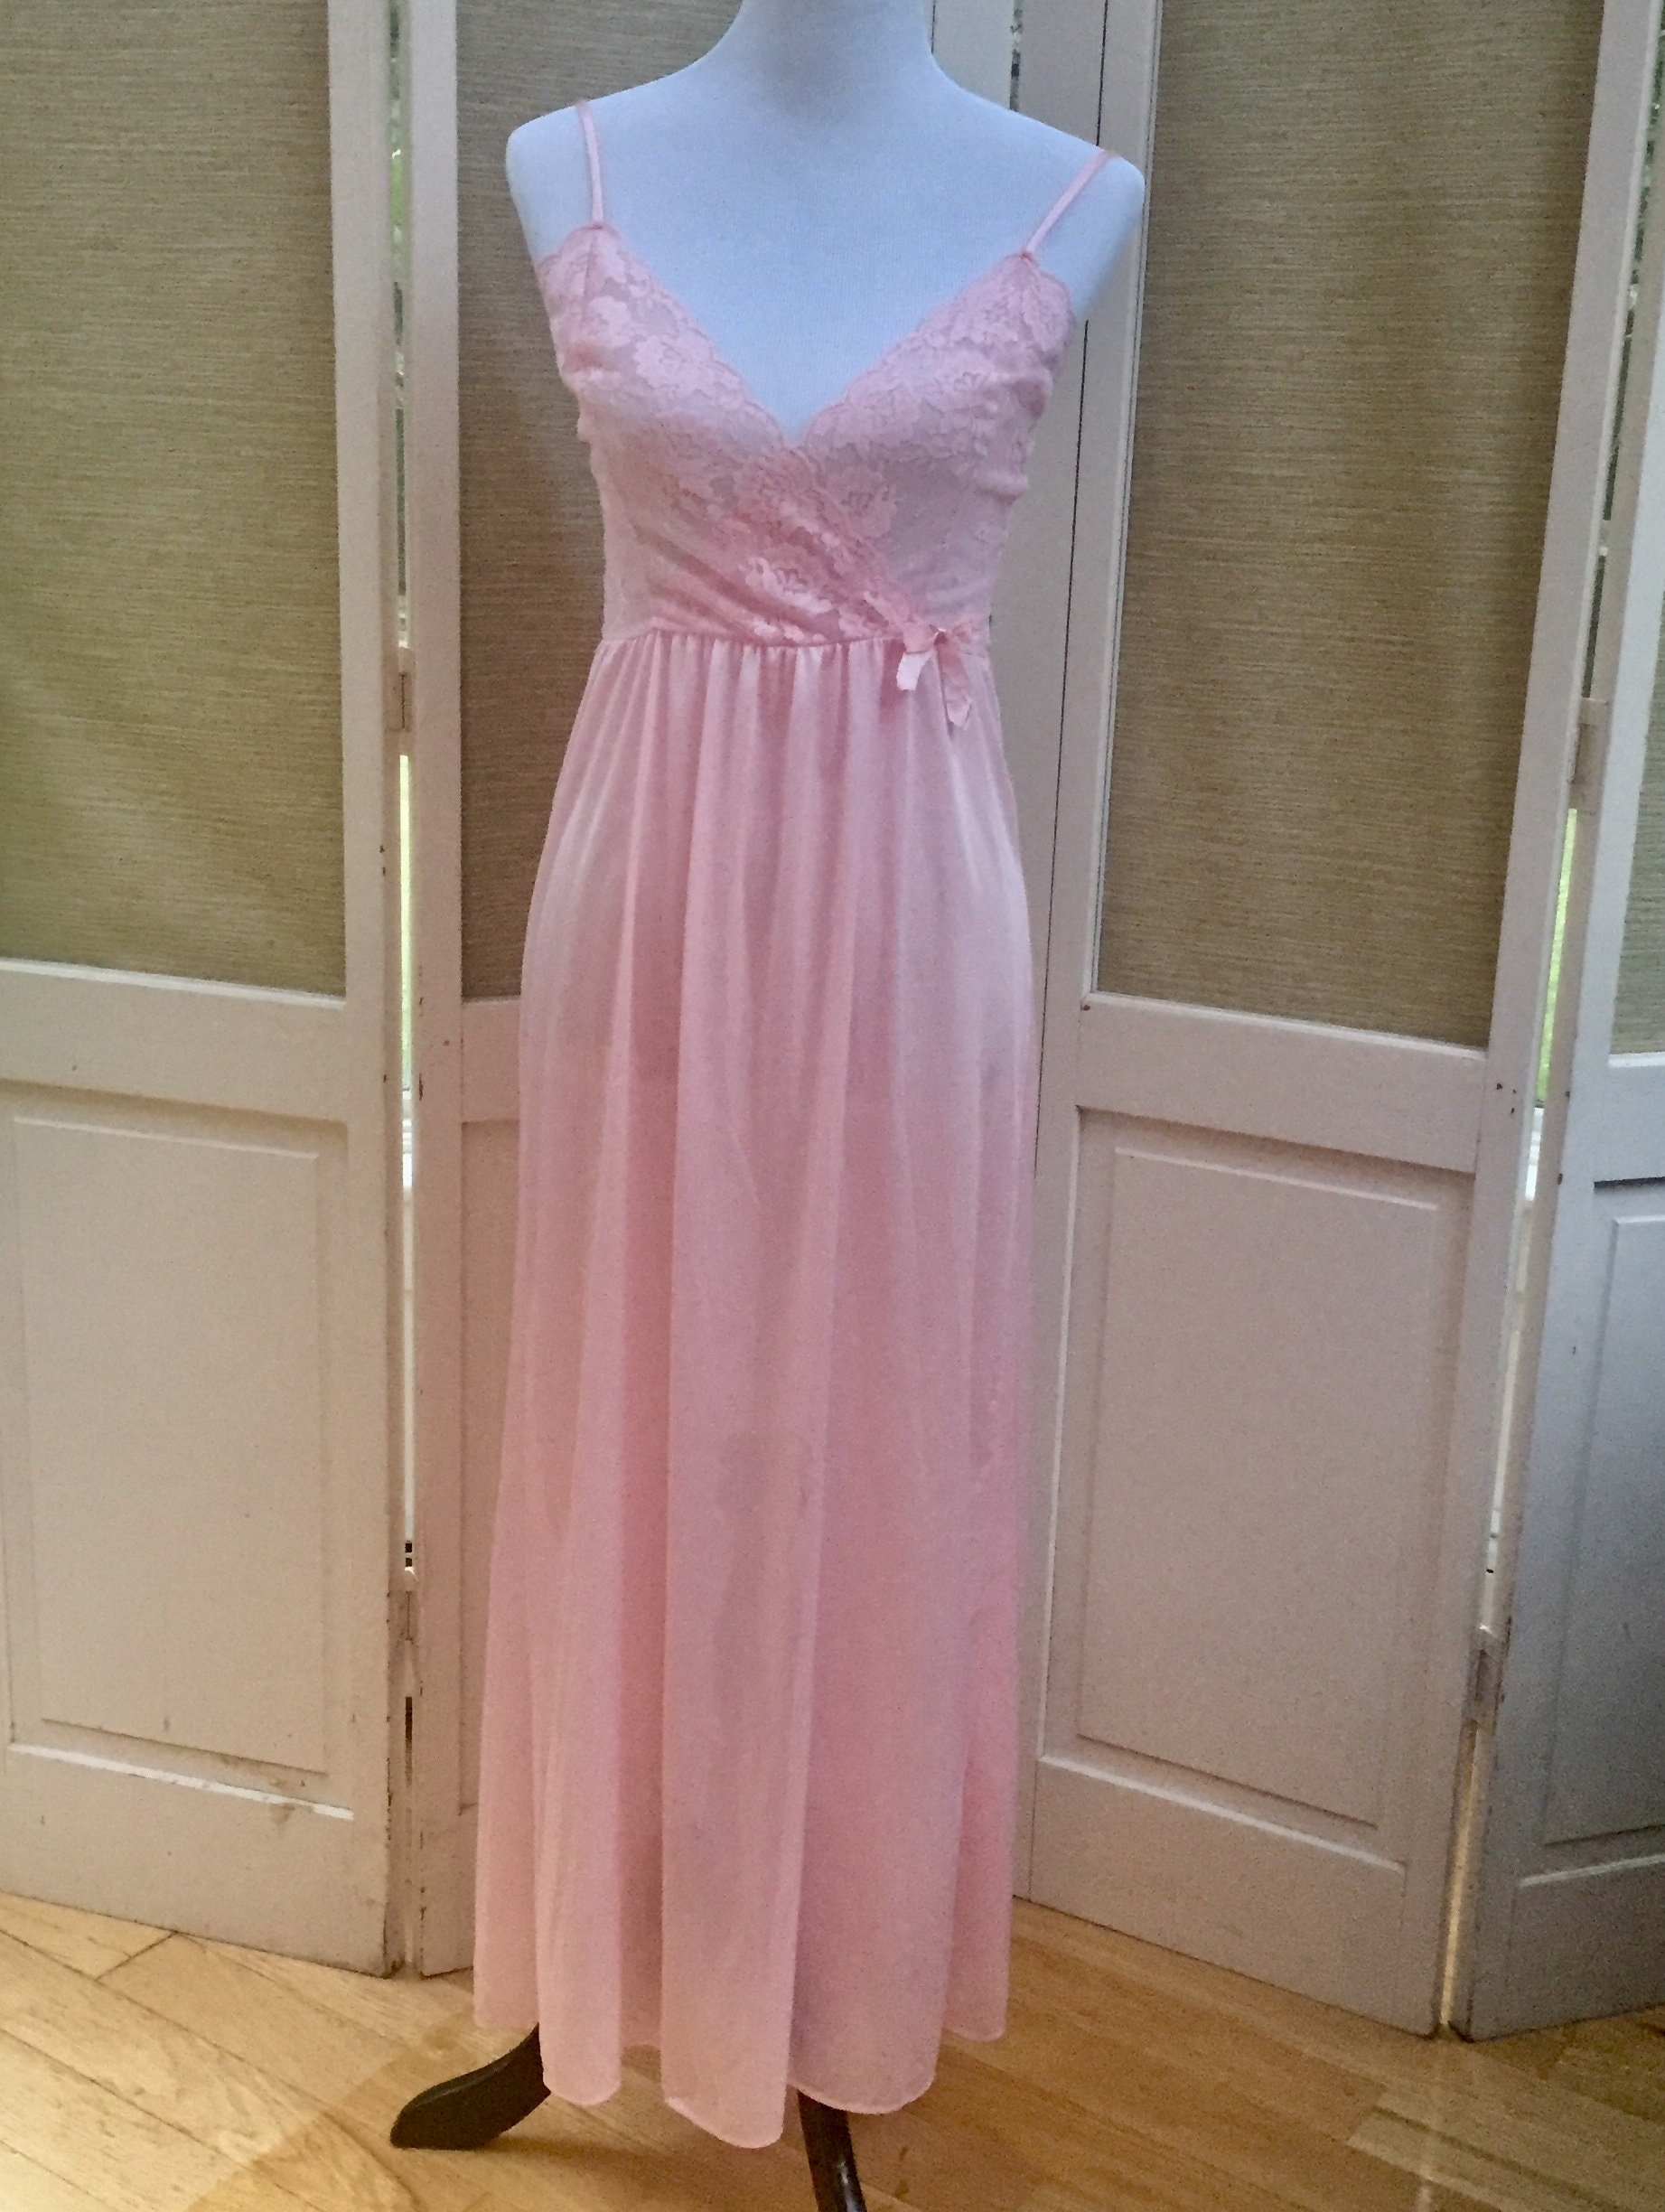 8154df1d345c ... 1960s Pink Satin Nightgown, 1960s Lingerie. gallery photo gallery photo  ...